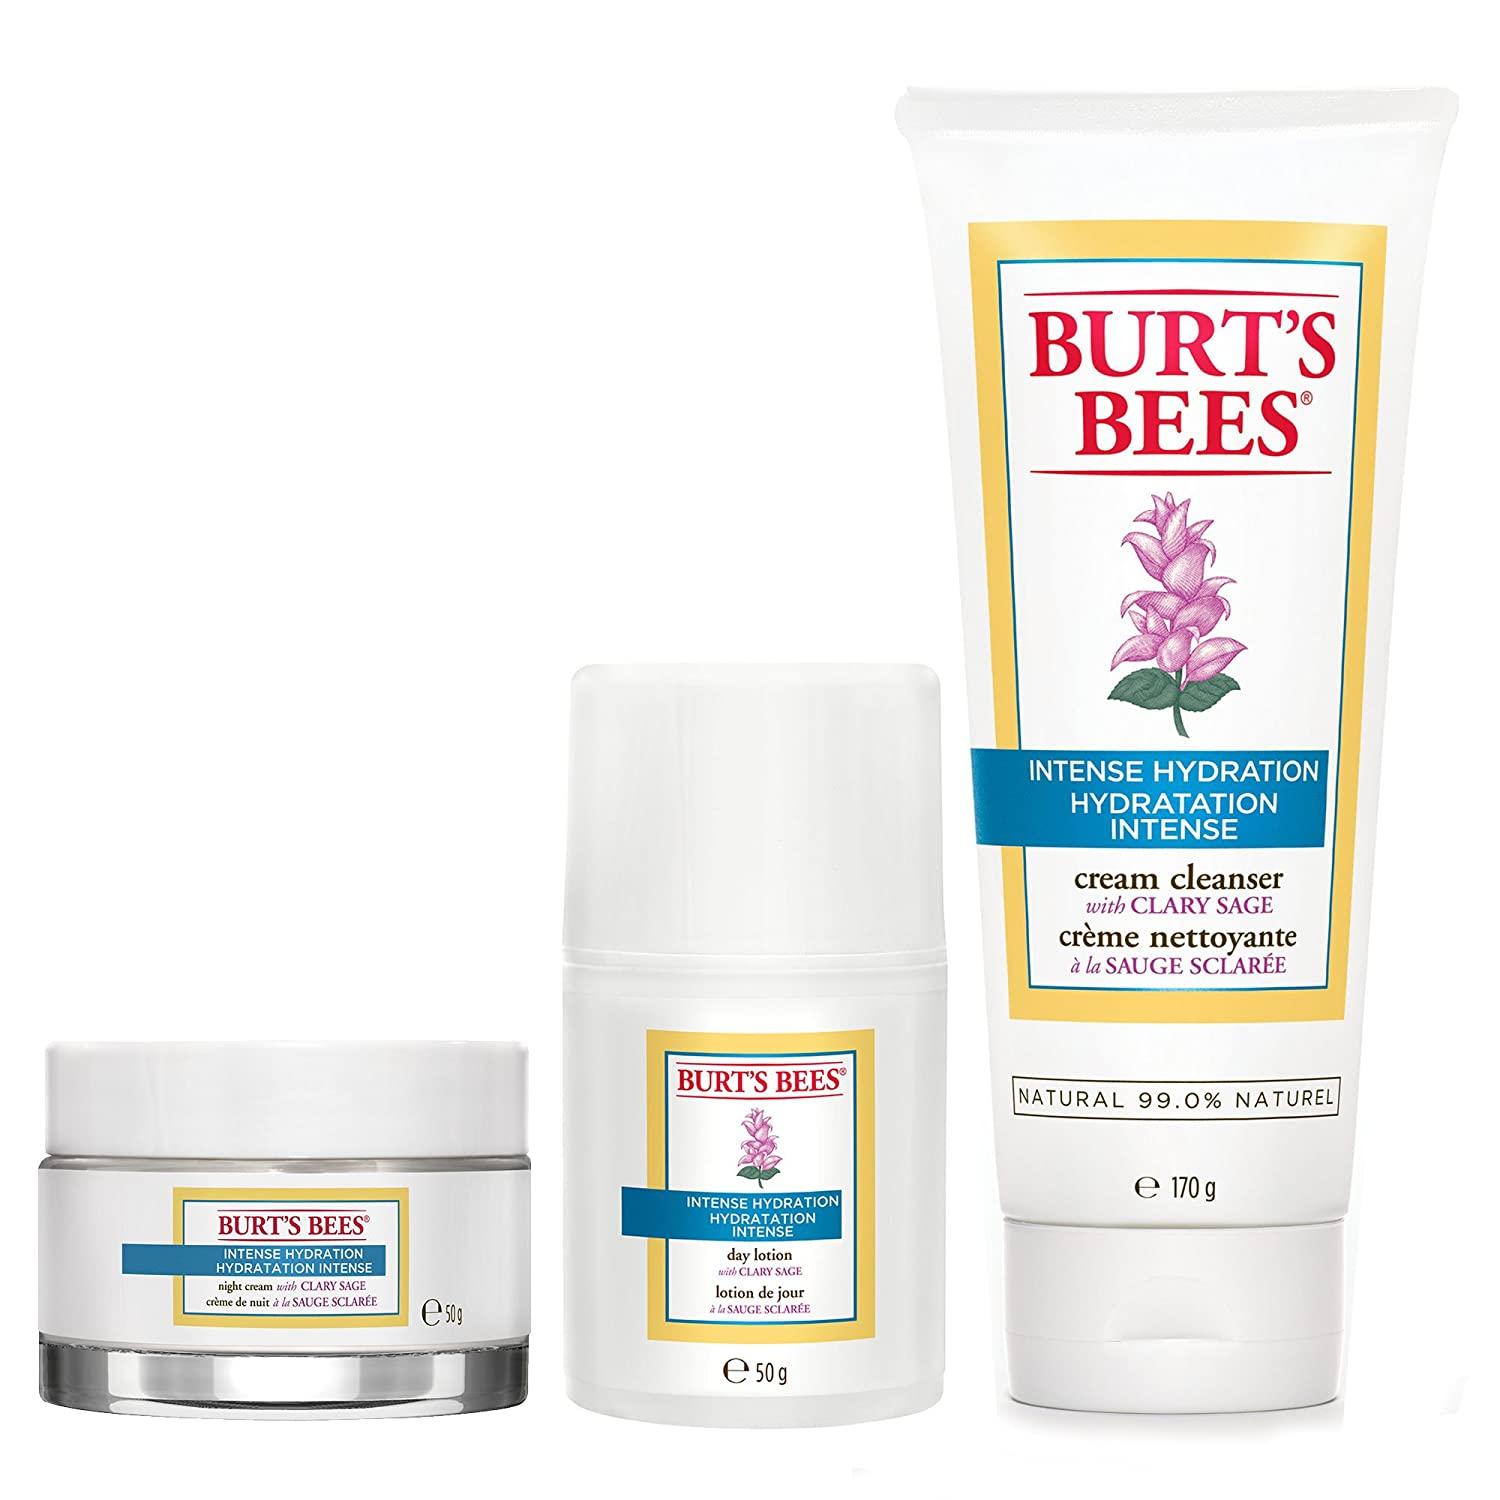 Burt's Bees Intense Hydration Night Cream, 50g CBee Europe Ltd 01691-14